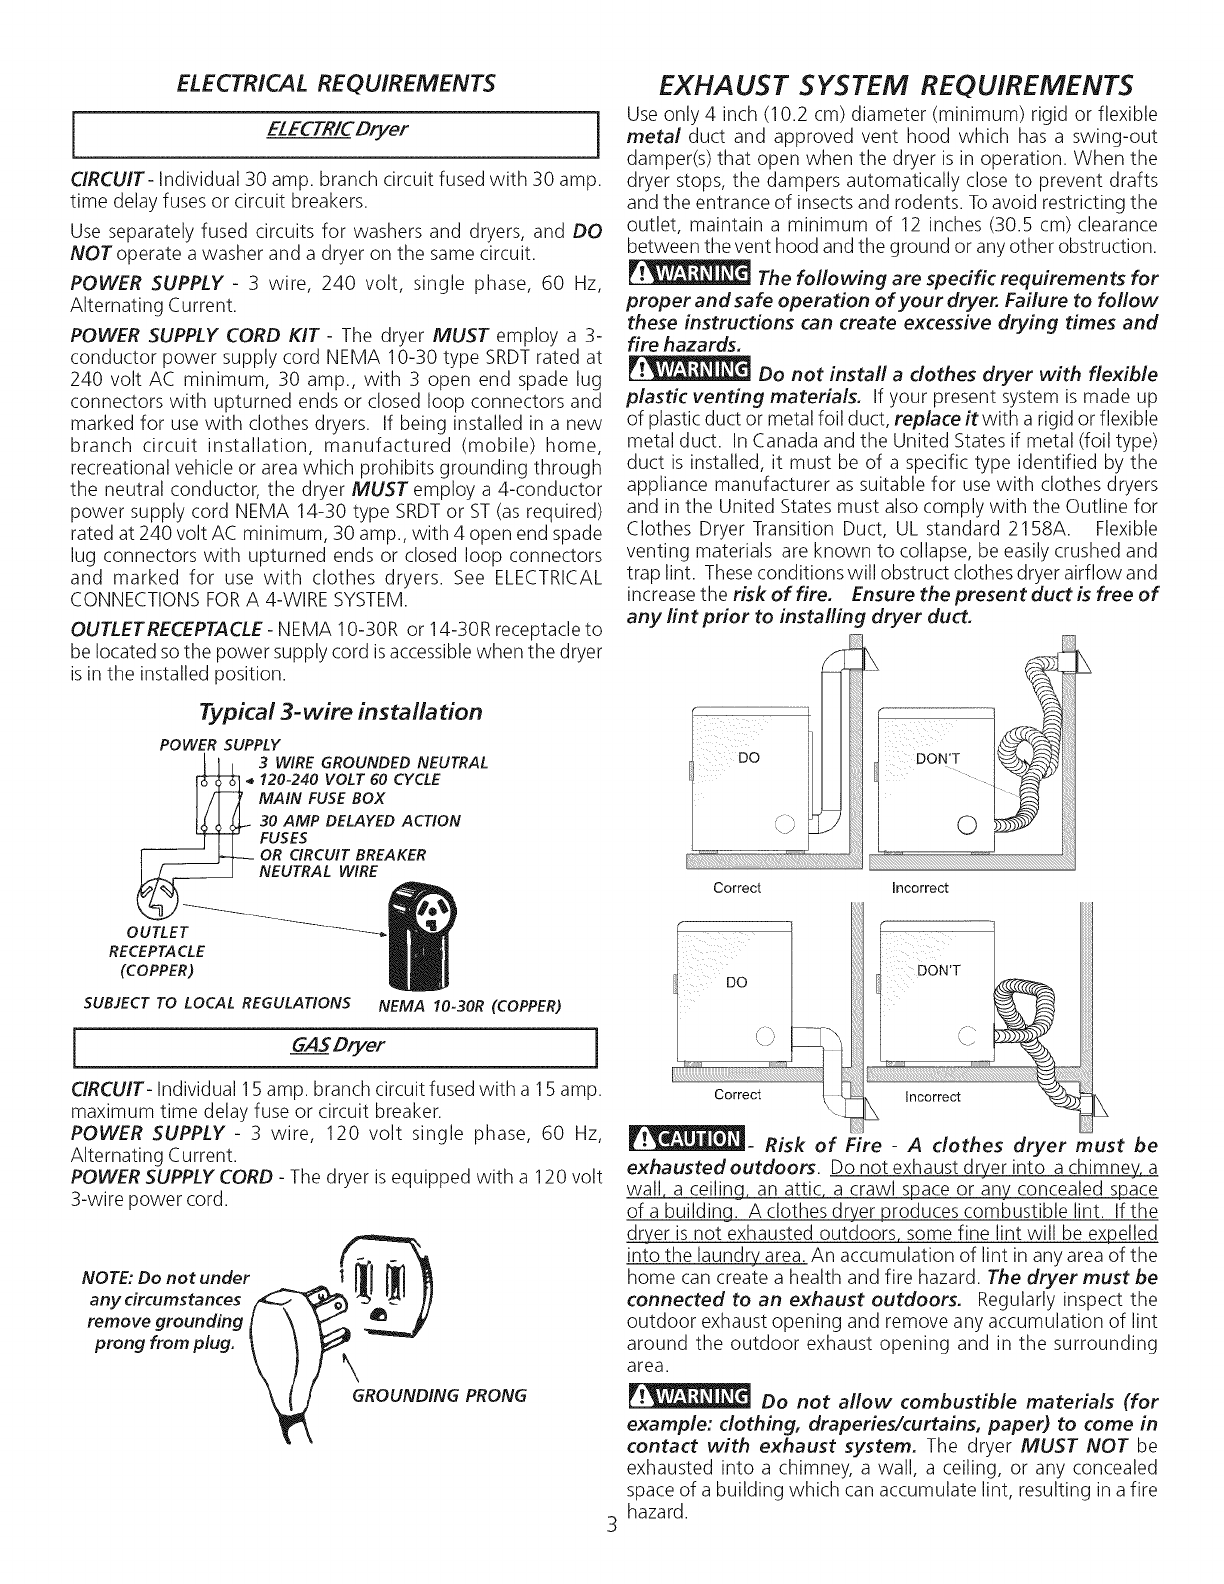 Kenmore 41764182300 User Manual Electric Dryer Manuals And Guides Wiring Harness In Addition Power Cord Electrical Requirements